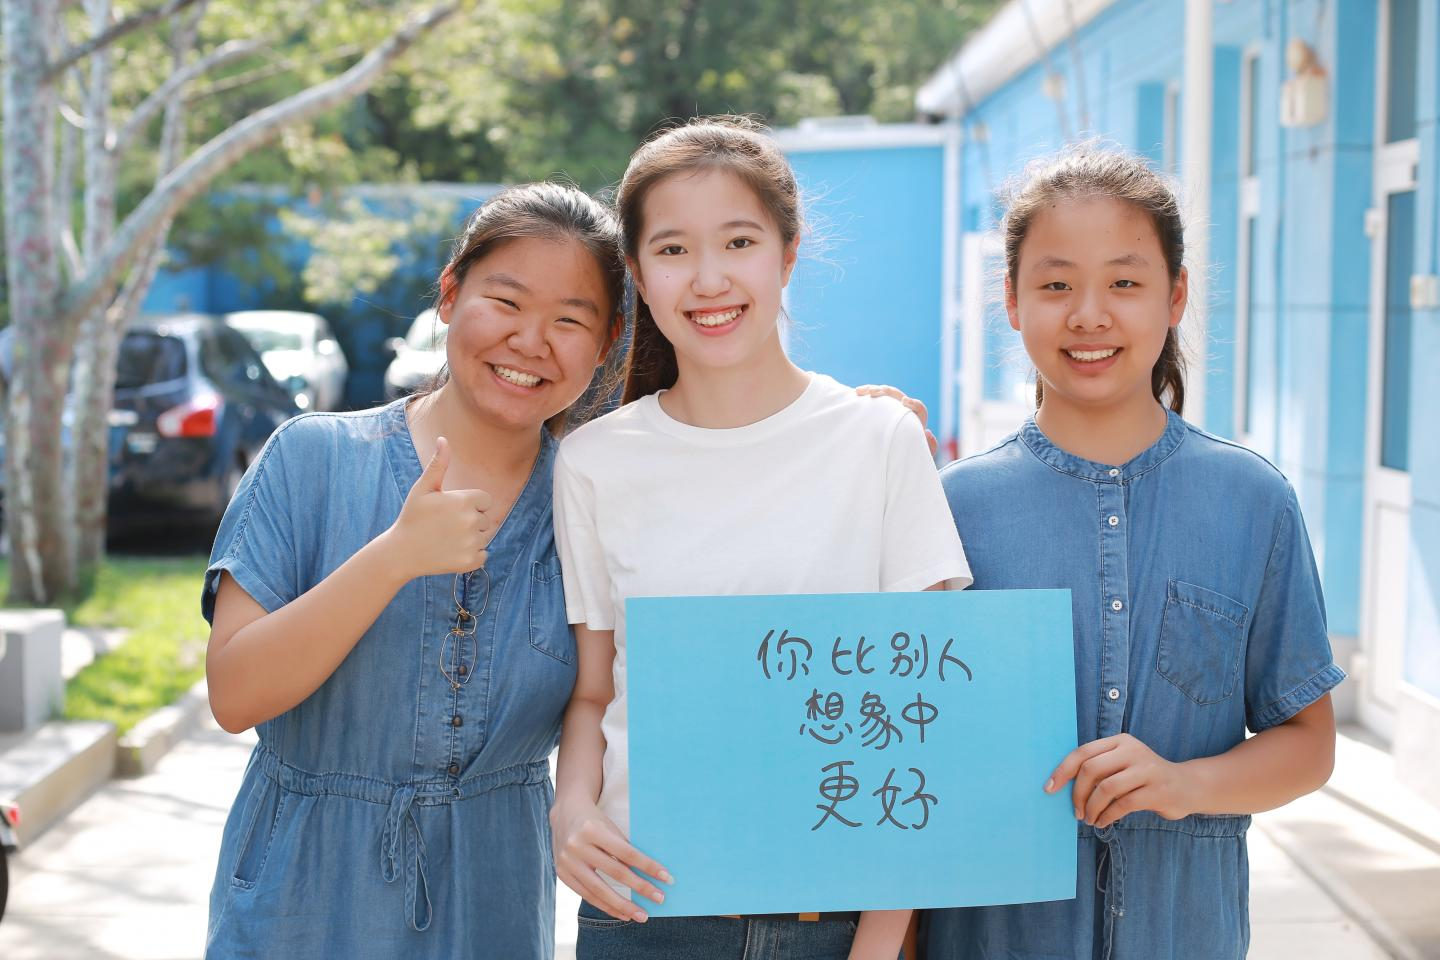 Young people in Beijing advocate for #ChooseKindness campaign to end violence, on 23rd July, 2019.